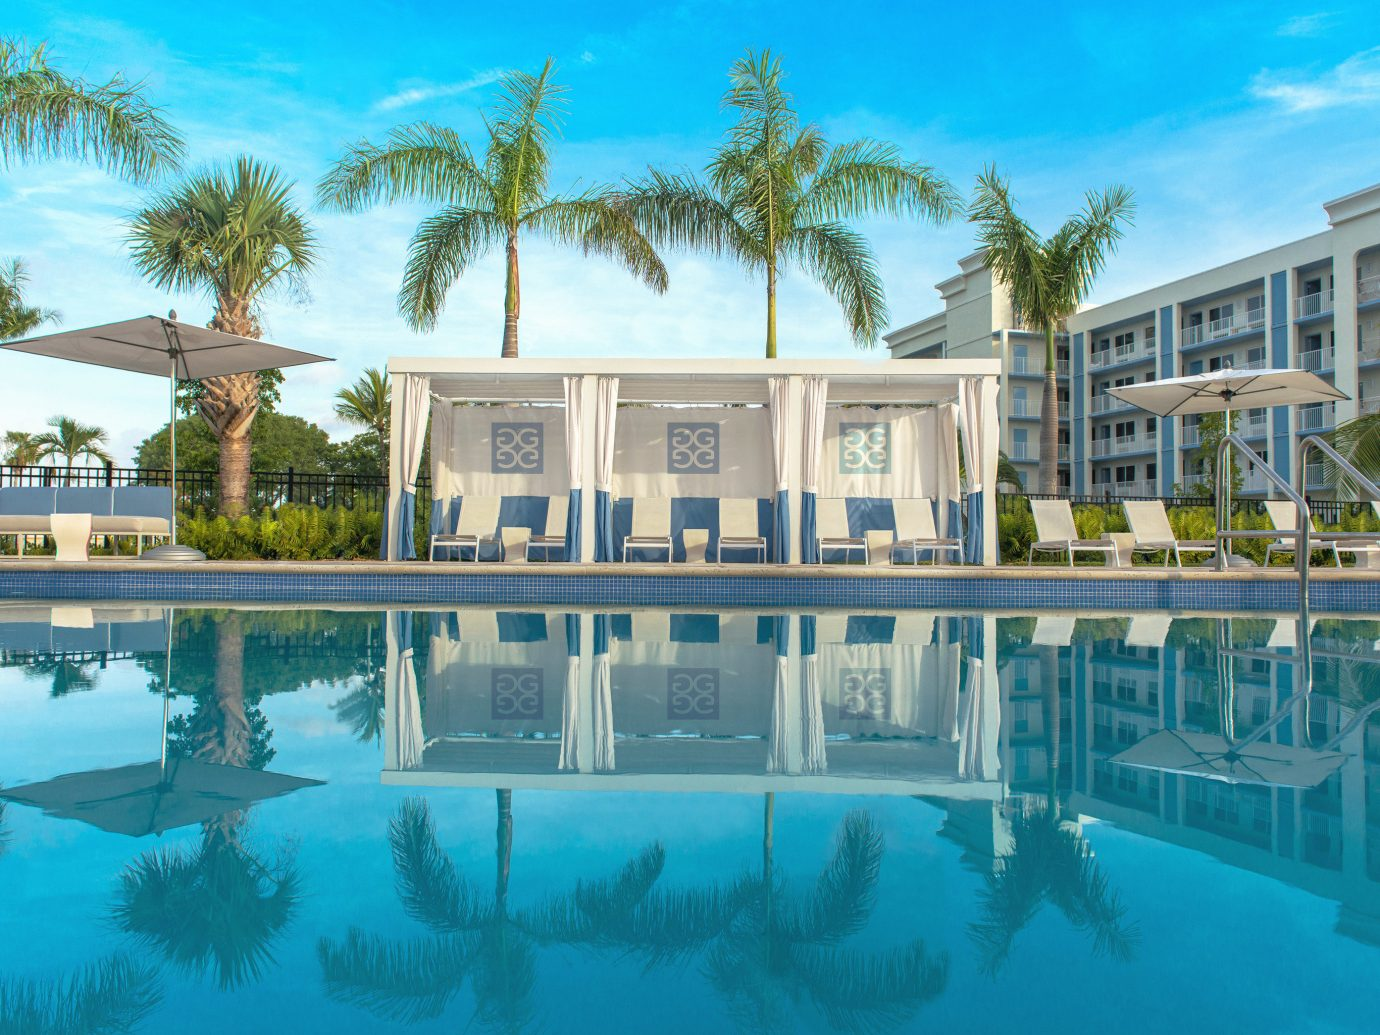 Florida Hotels tree sky outdoor swimming pool building property estate Resort condominium leisure mansion home vacation reflecting pool Villa resort town palace real estate surrounded